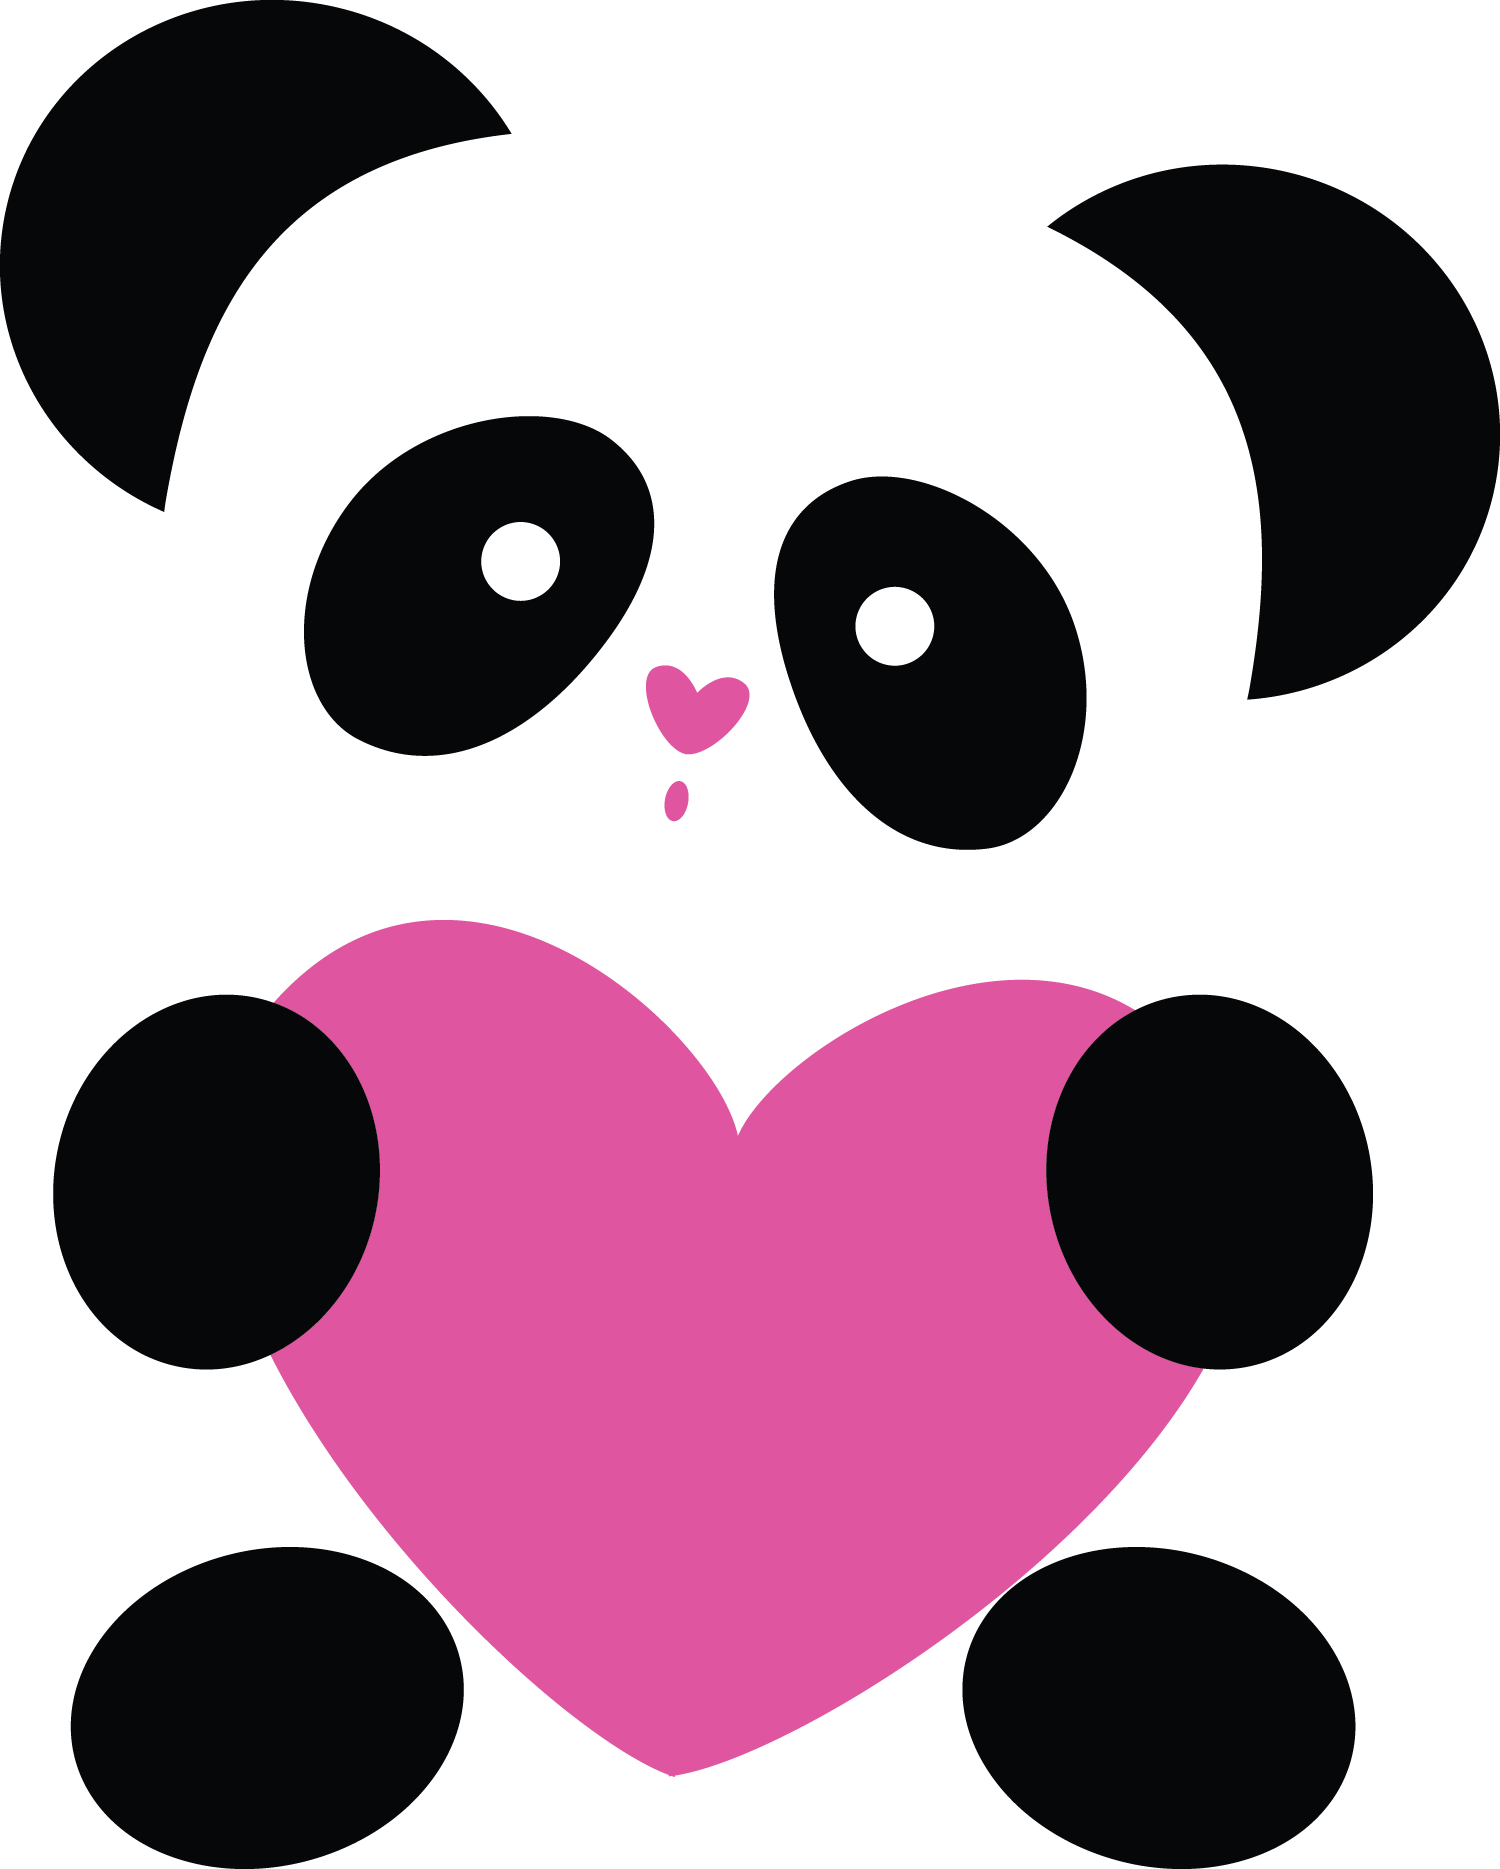 Something wearing a crown kawaii clipart image freeuse library El amor lo vale todo ❤ | Corazón | Pinterest | Panda and Kawaii image freeuse library